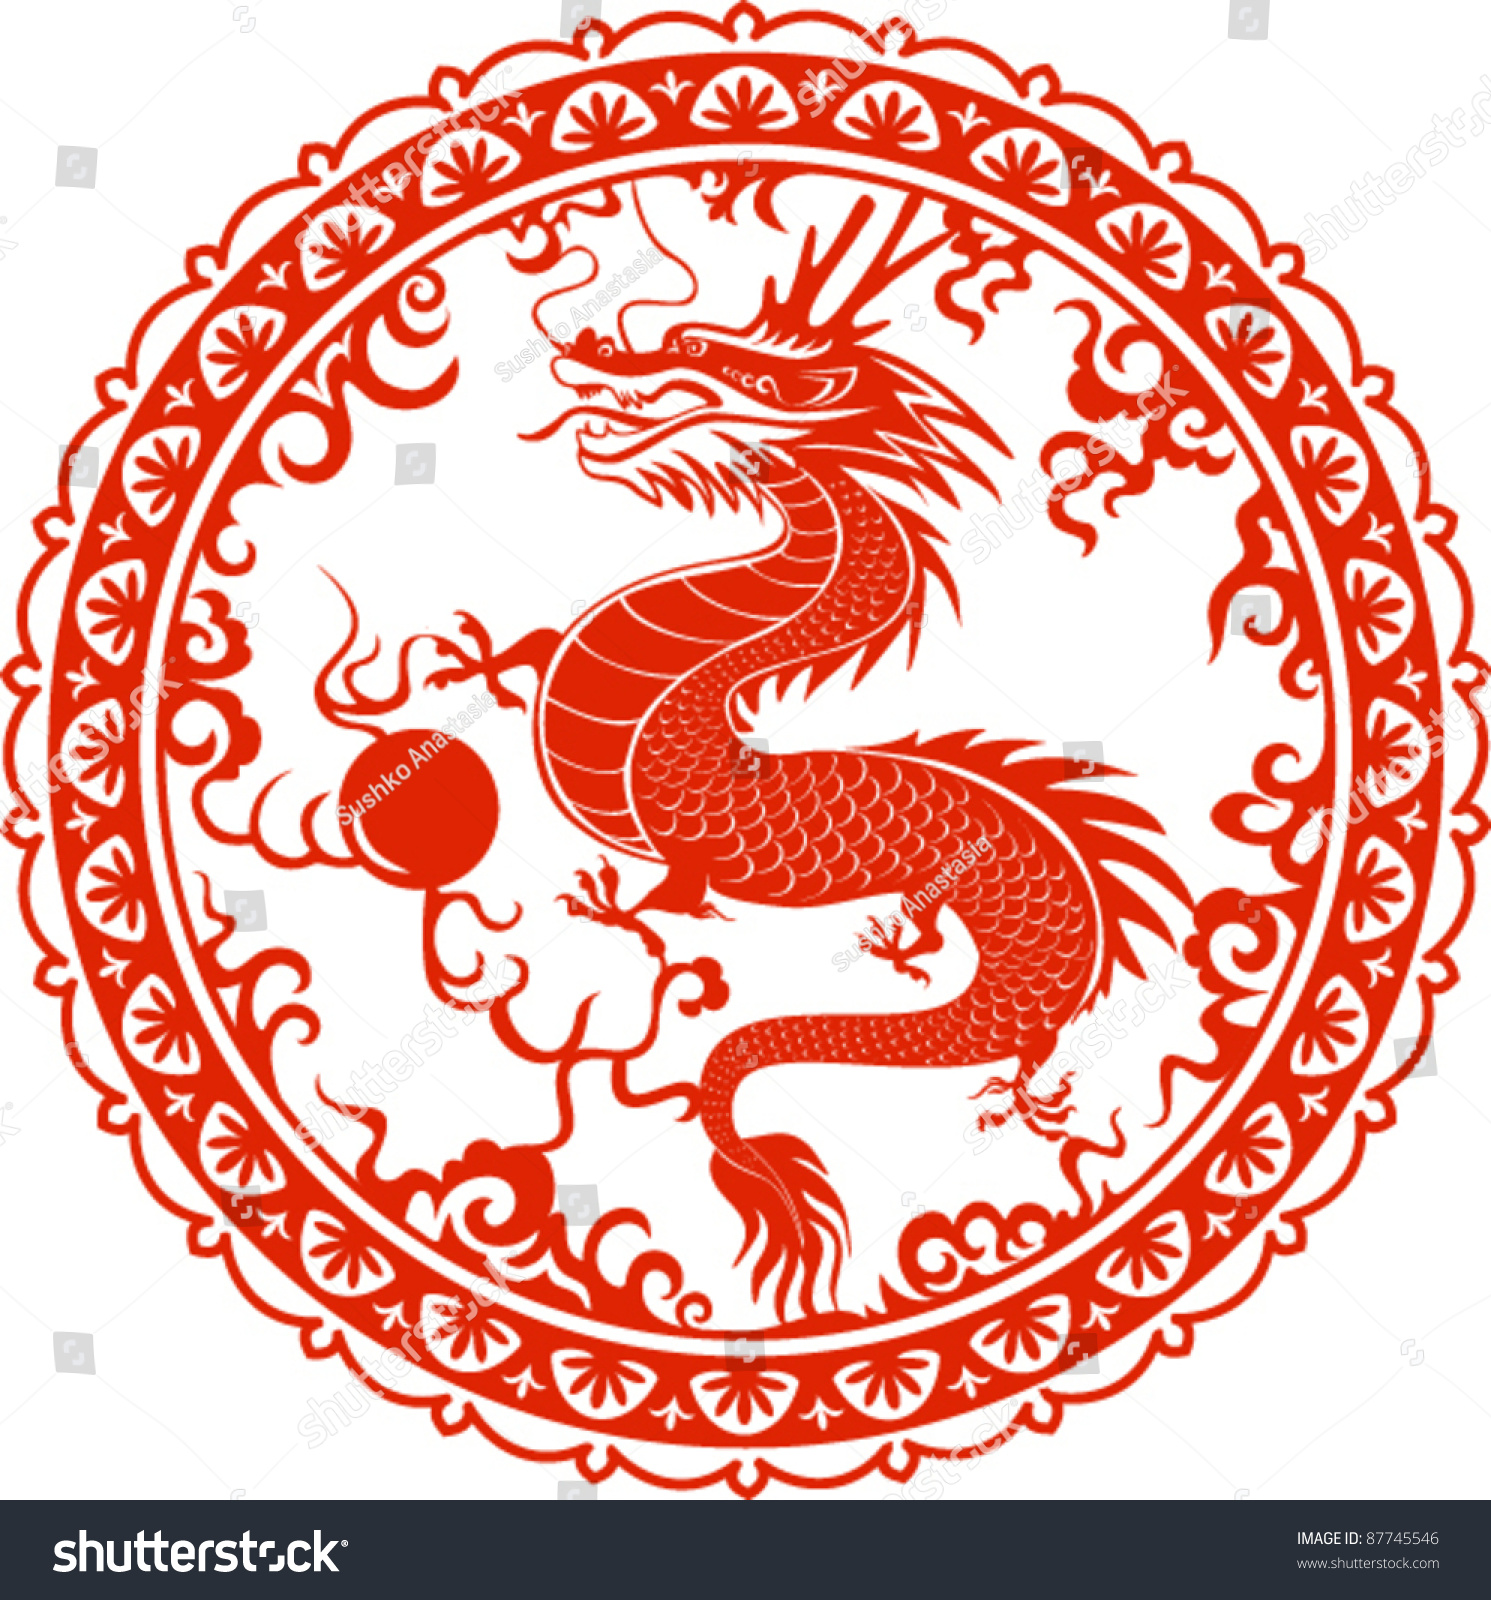 http://image.shutterstock.com/z/stock-vector-dragon-year-chinese-zodiac-87745546.jpg